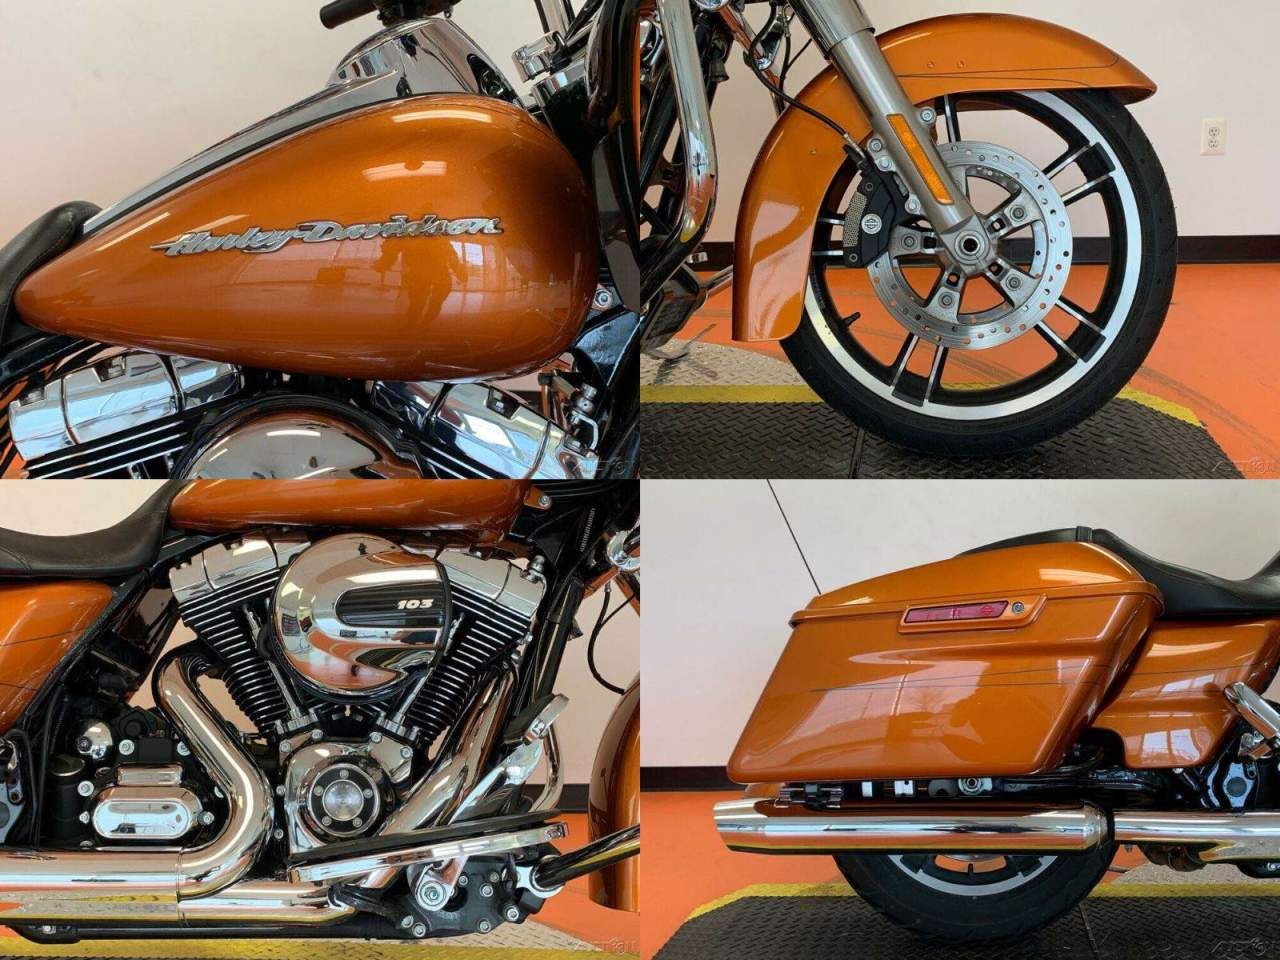 2015 Harley-Davidson Touring Amber Whiskey used for sale near me